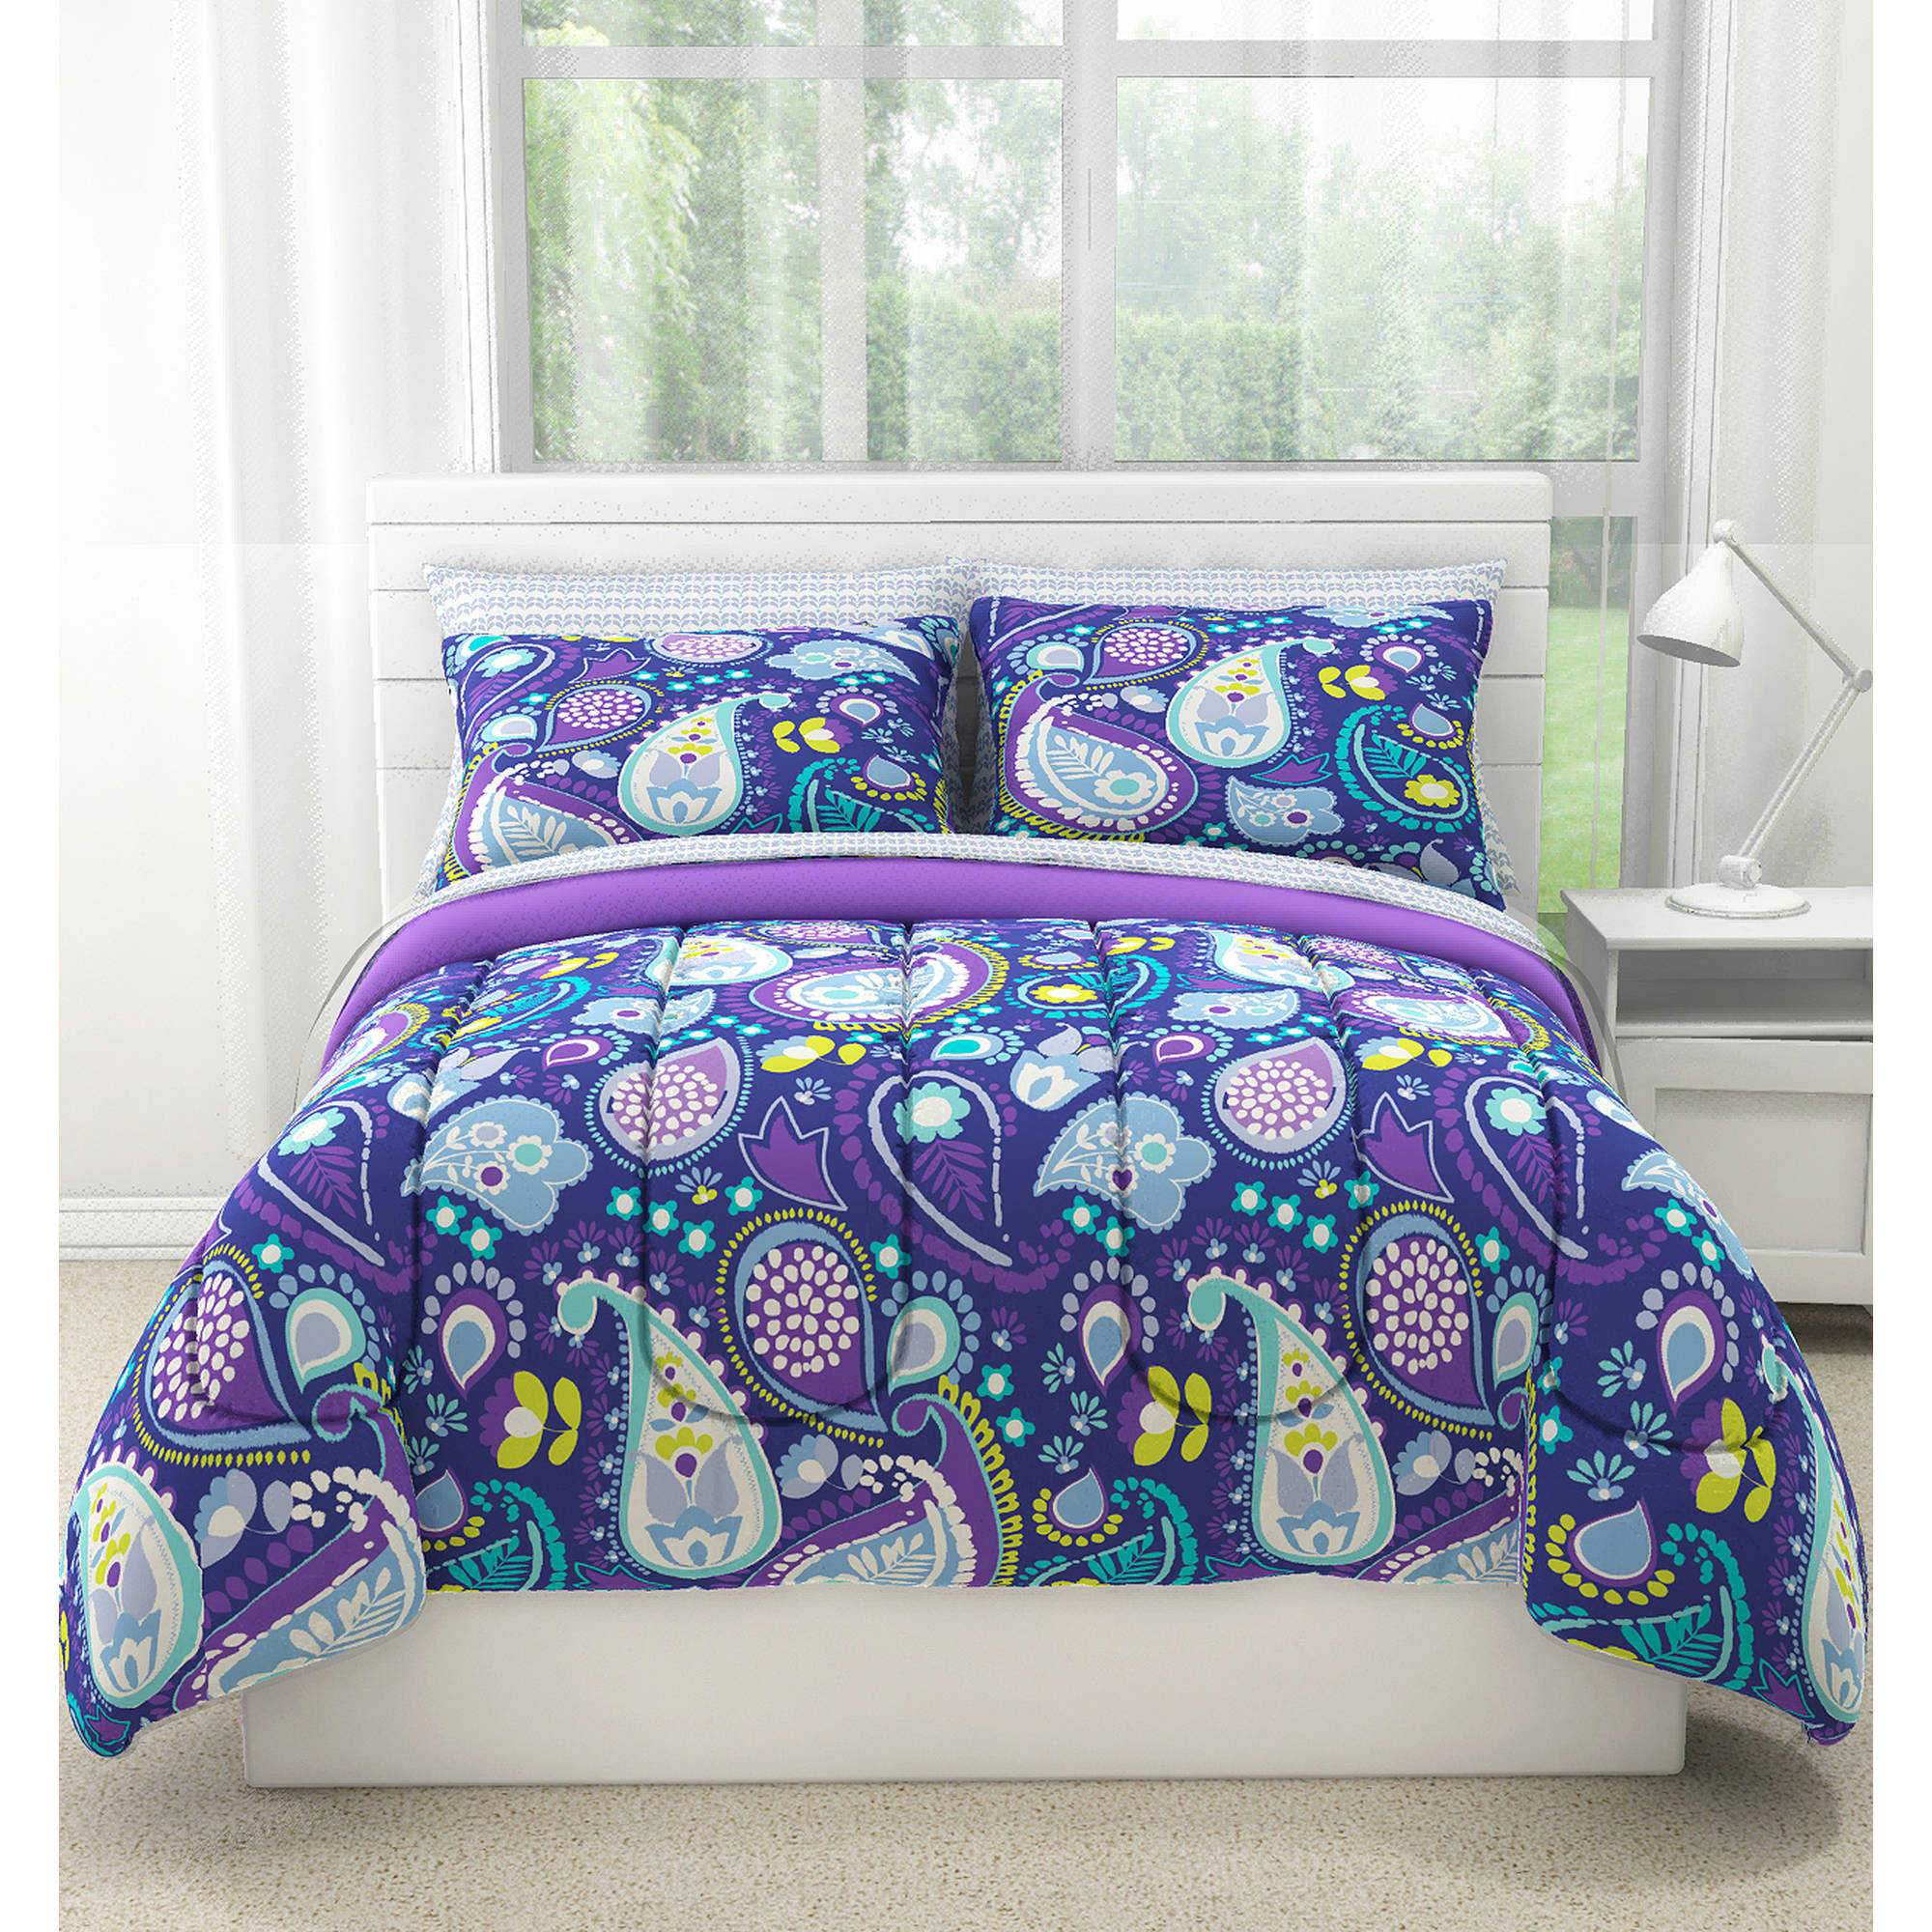 your zone midnight paisley 2-piece comforter set, twin